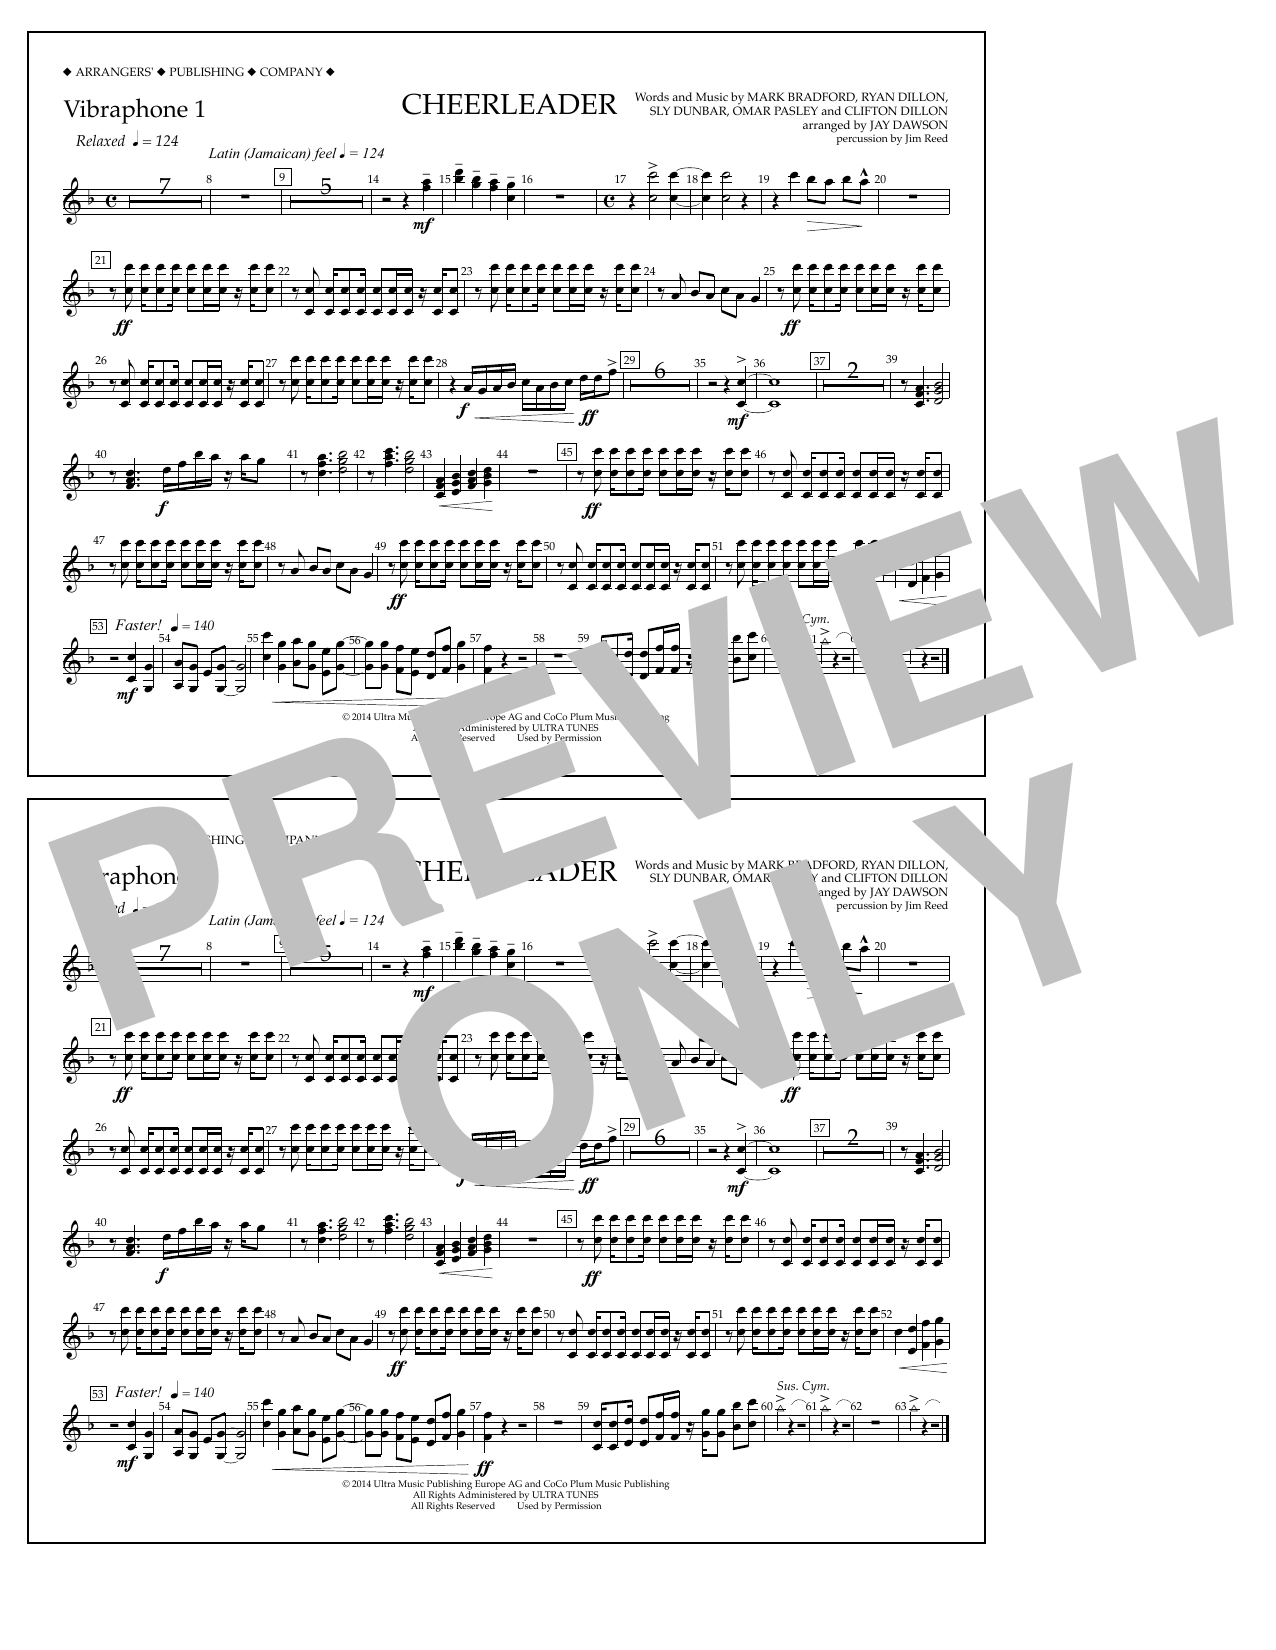 Jay Dawson Cheerleader - Vibraphone 1 sheet music notes and chords